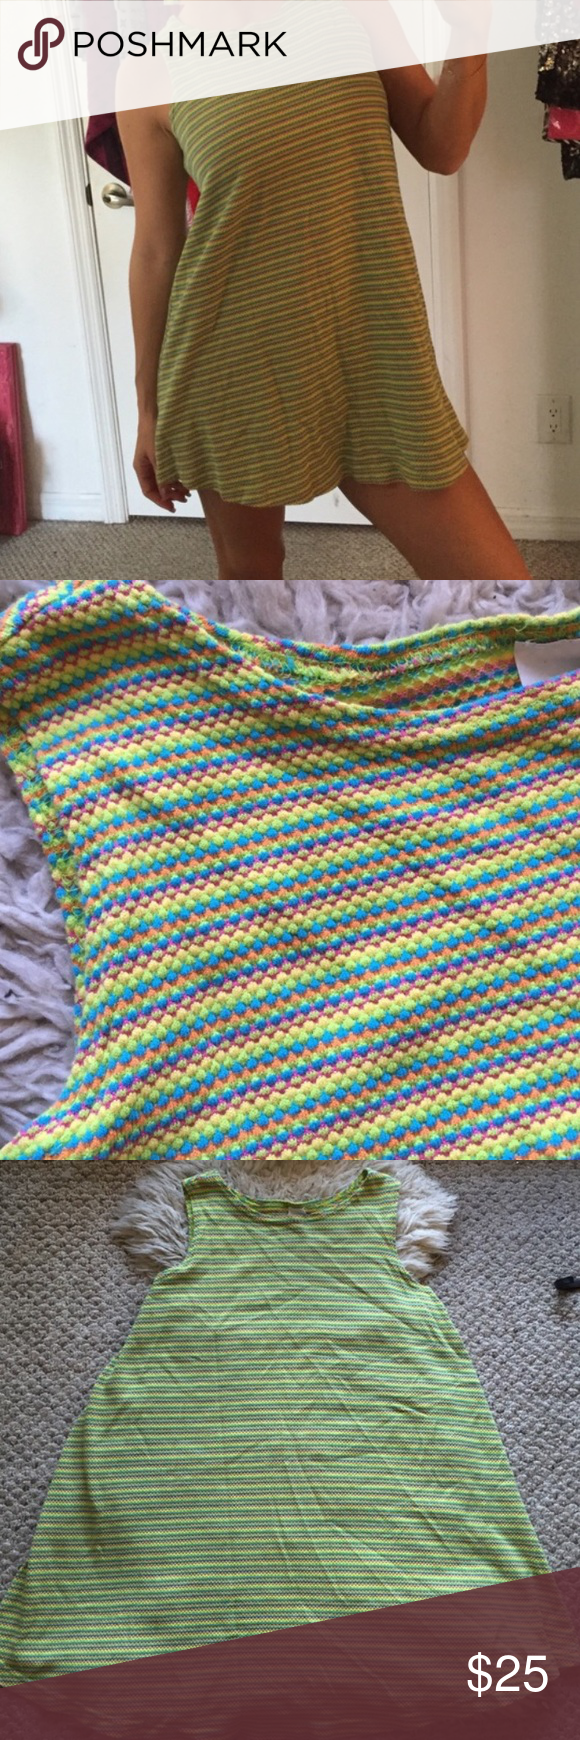 Nasty gal limited edit. 1970s A-line tunic Super cute piece, meant to be worn as a shirt or super short dress with multicolor spring stripes. Nasty Gal Dresses Mini